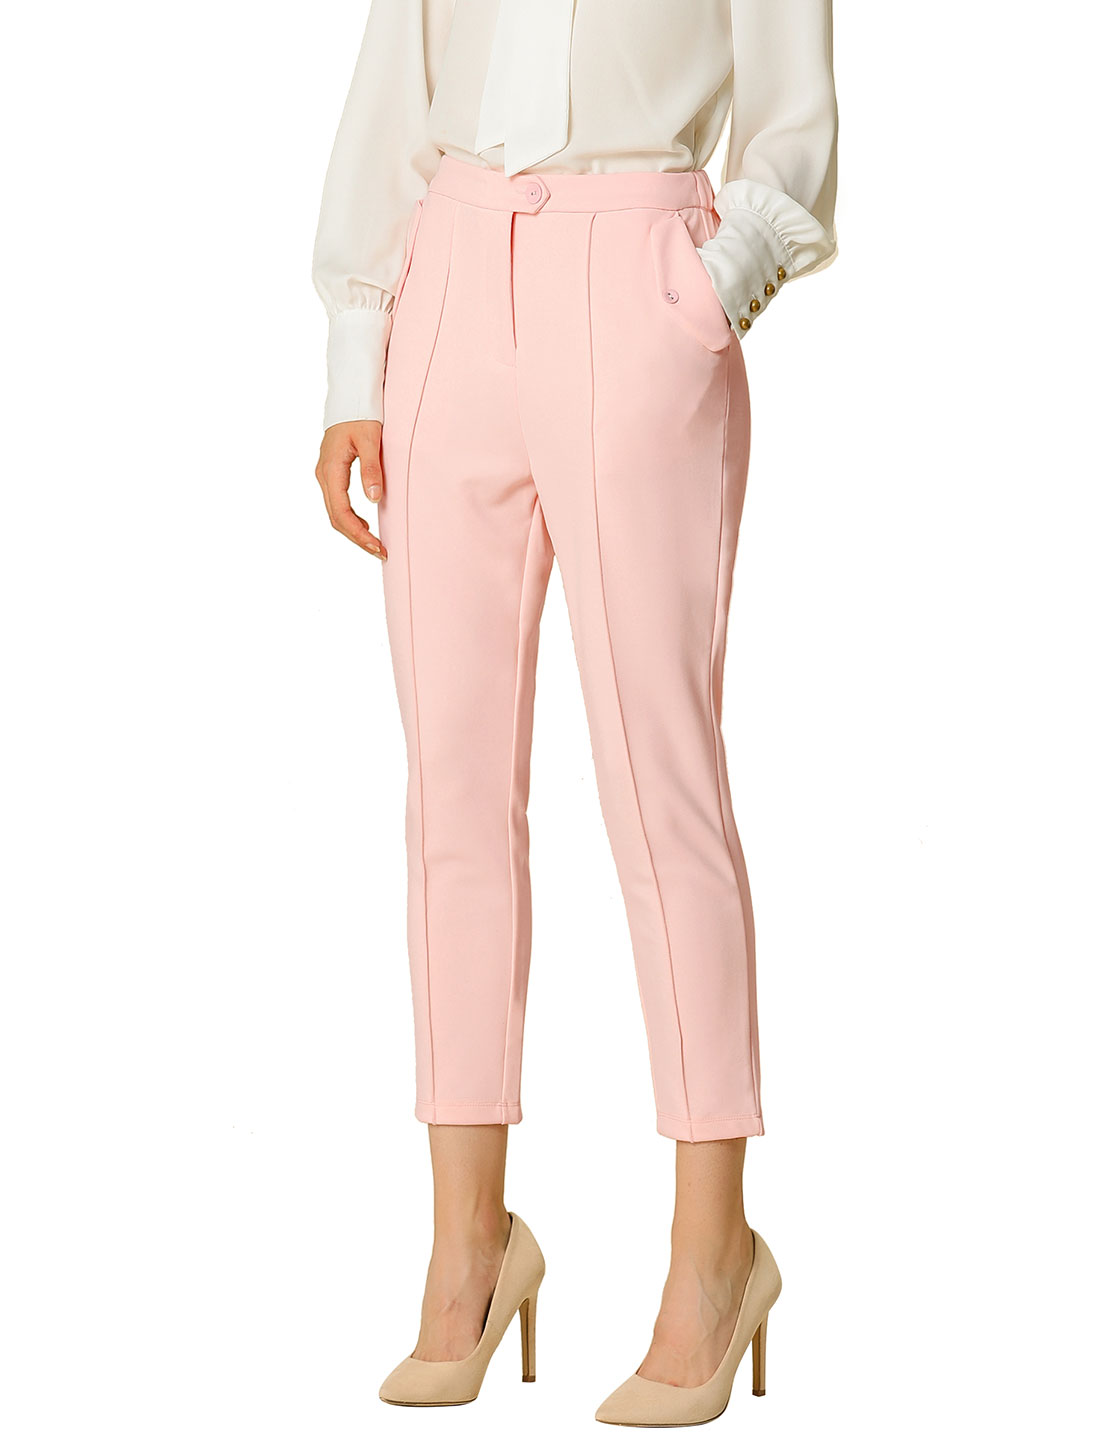 Allegra K Women's Work Pants Slim Stretchy Cropped Trousers Pink XL